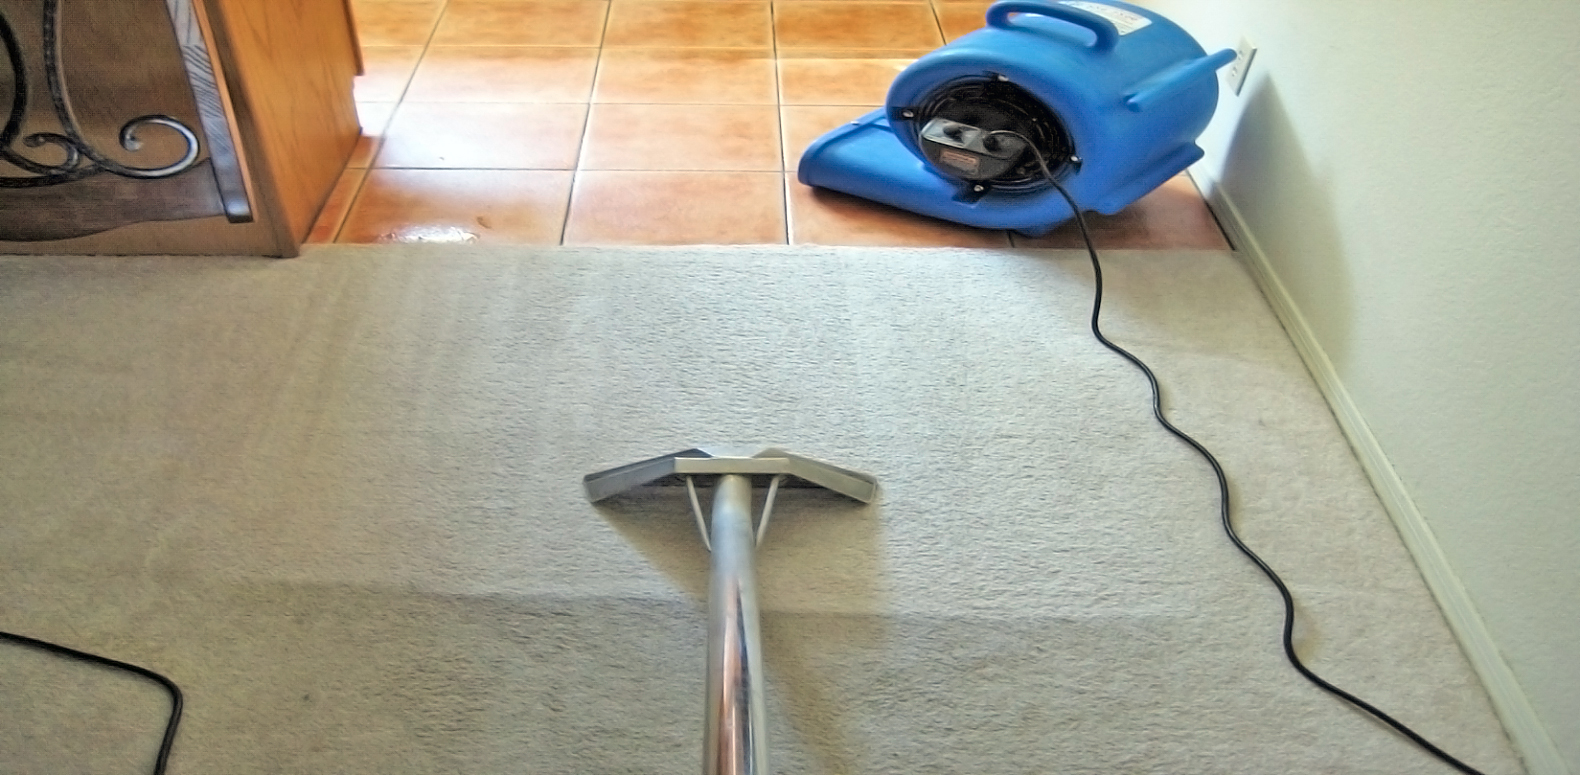 Carpet Cleaning Bushells Ridge